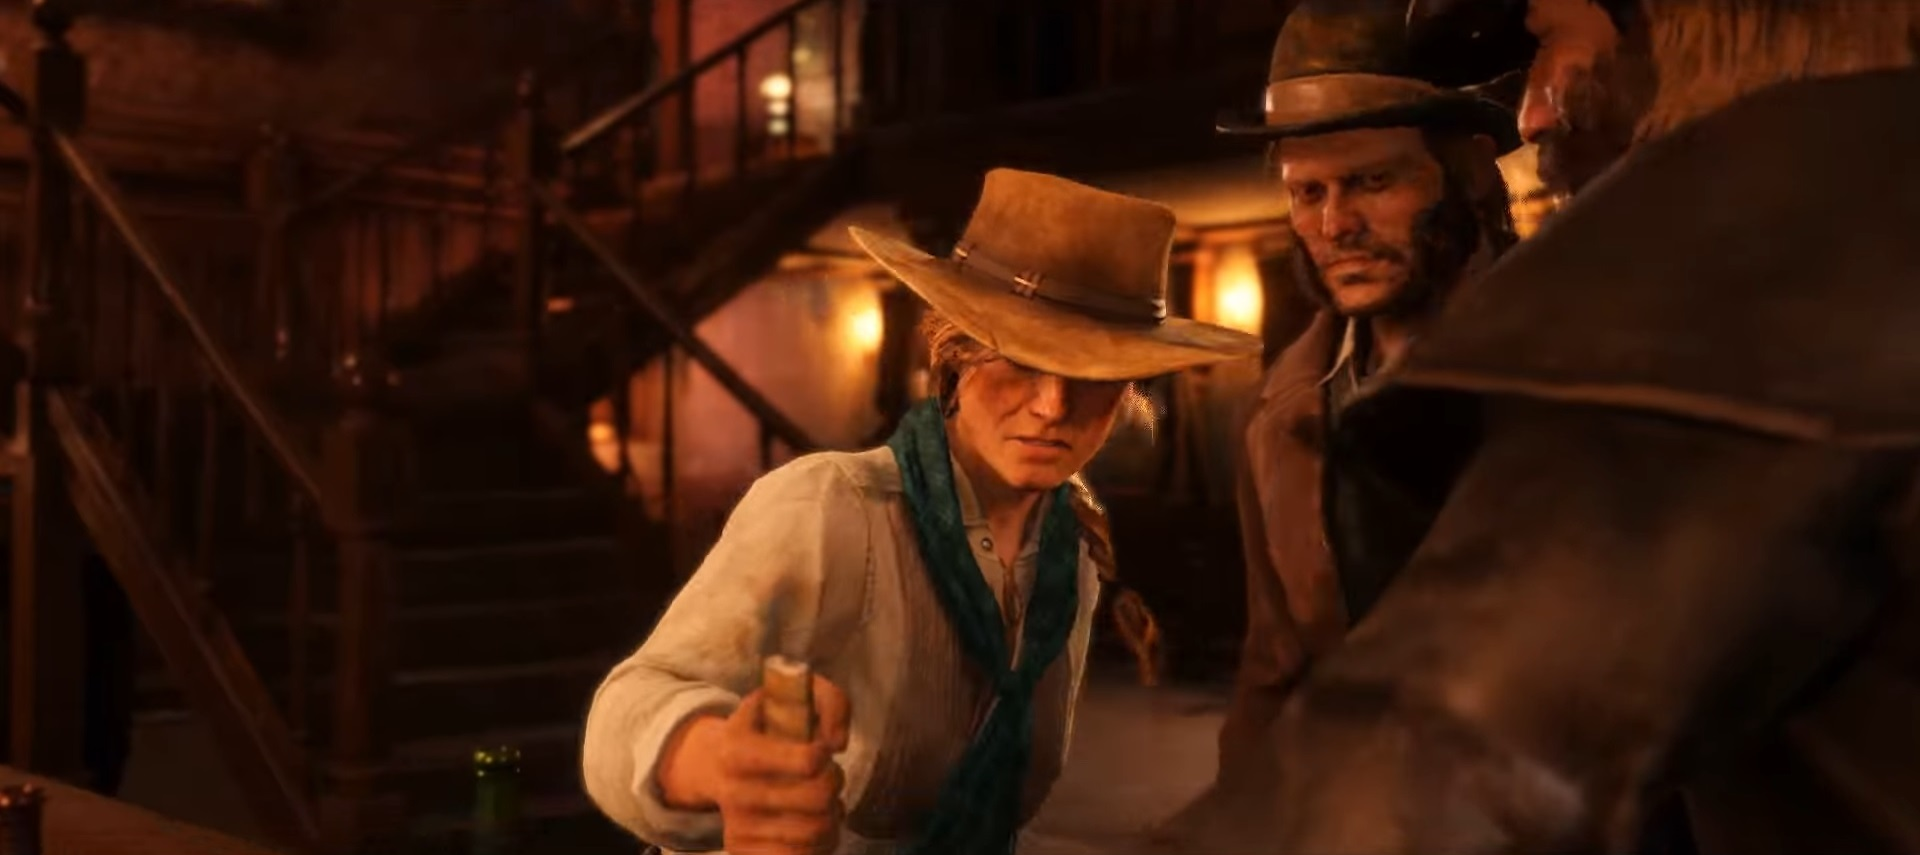 Did We Just See John Marston In The Red Dead Redemption 2